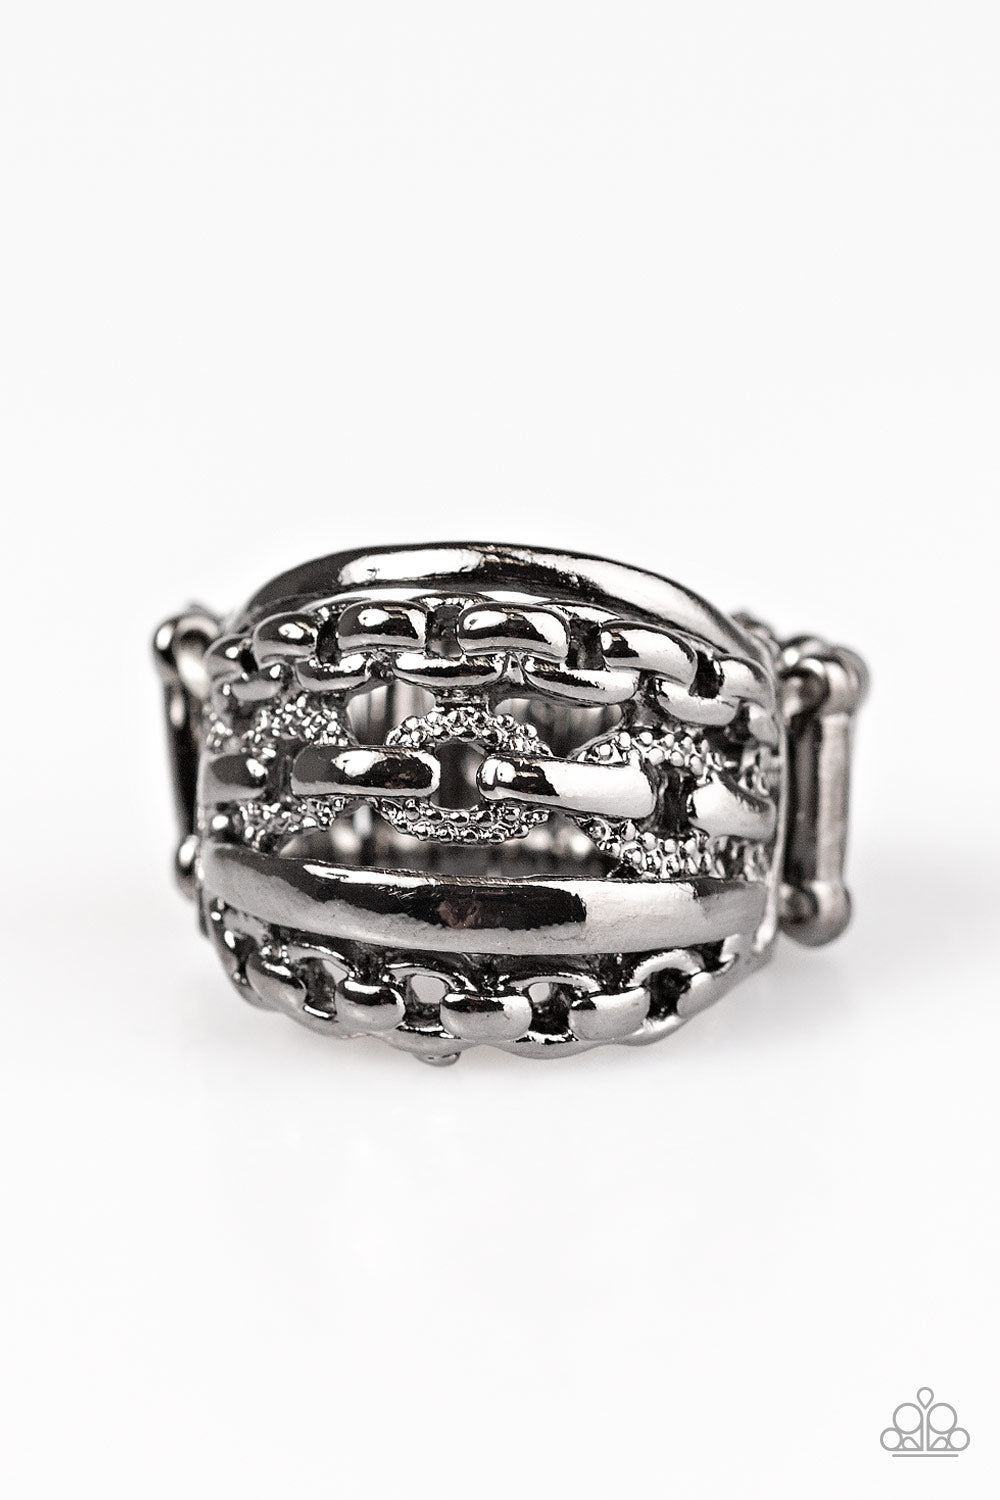 A CHIC Reaction - Black - Paparazzi ring